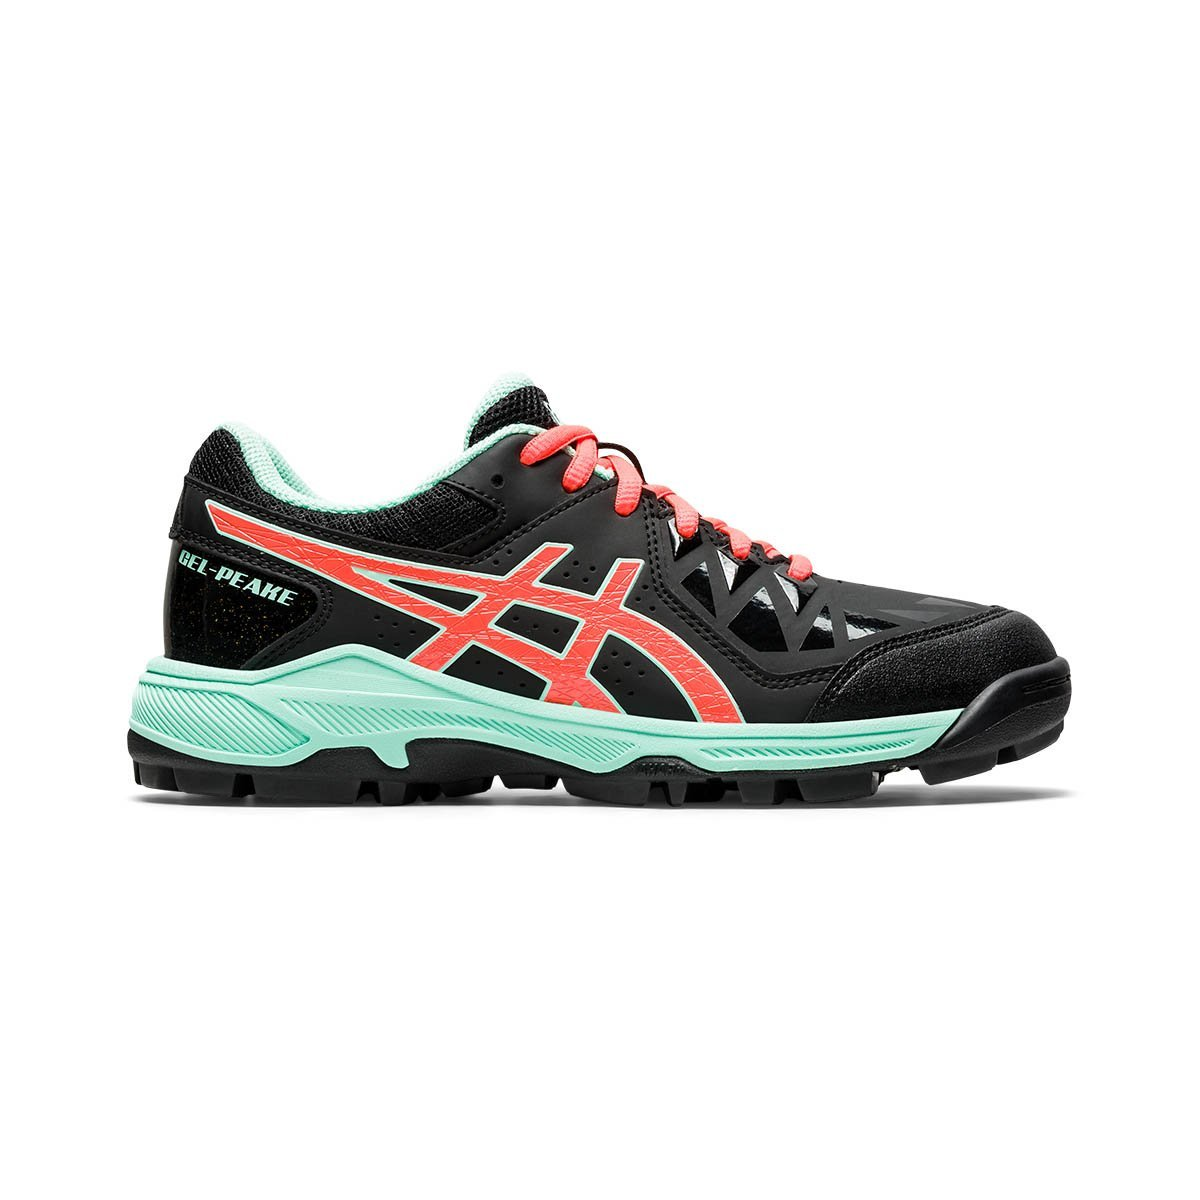 Asics Gel-Peake GS Black/Flash Coral (Kids) - Just Hockey